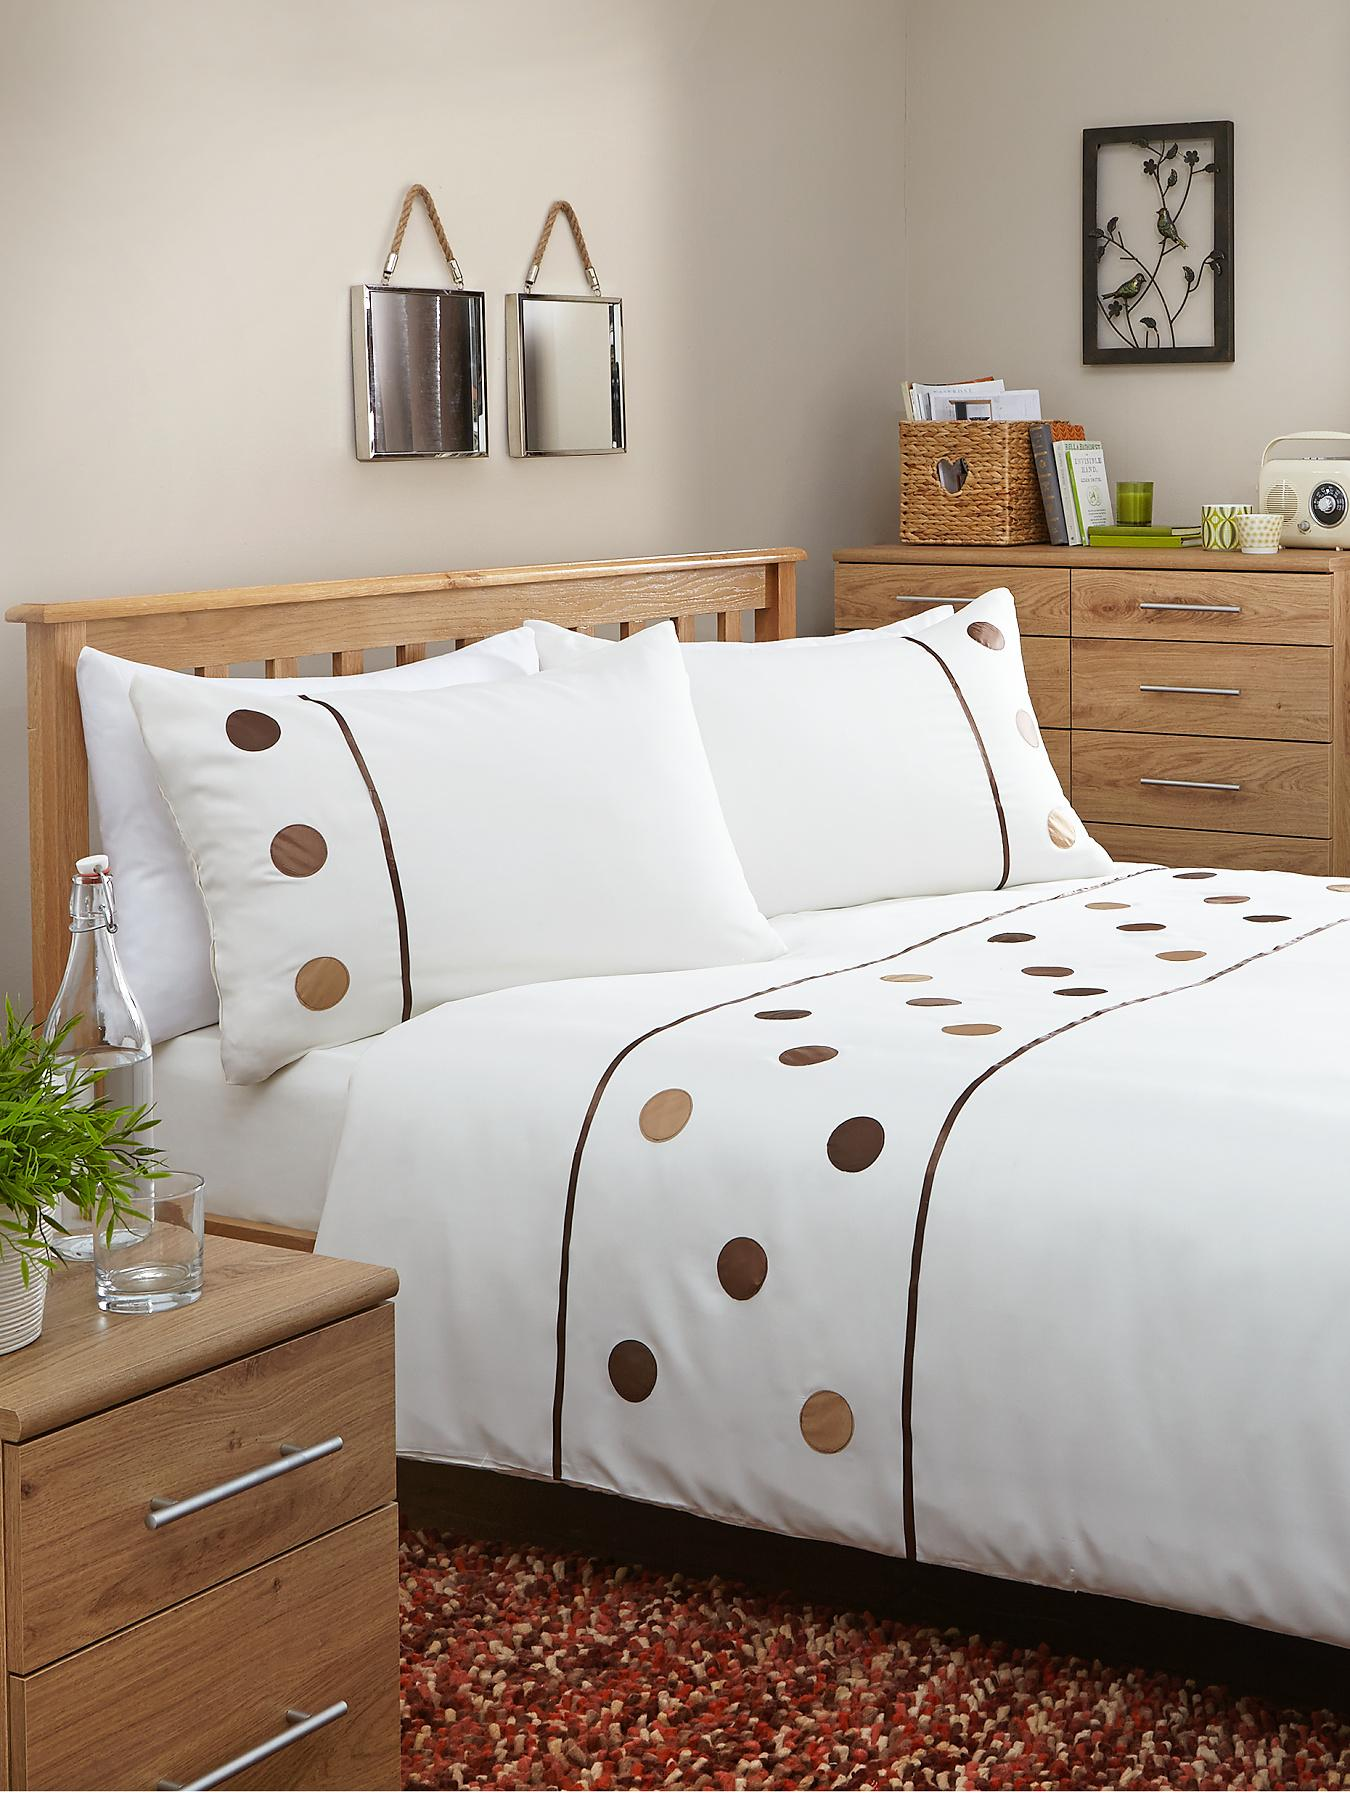 Applique Circles Duvet Cover Set with FREE Fitted Sheet